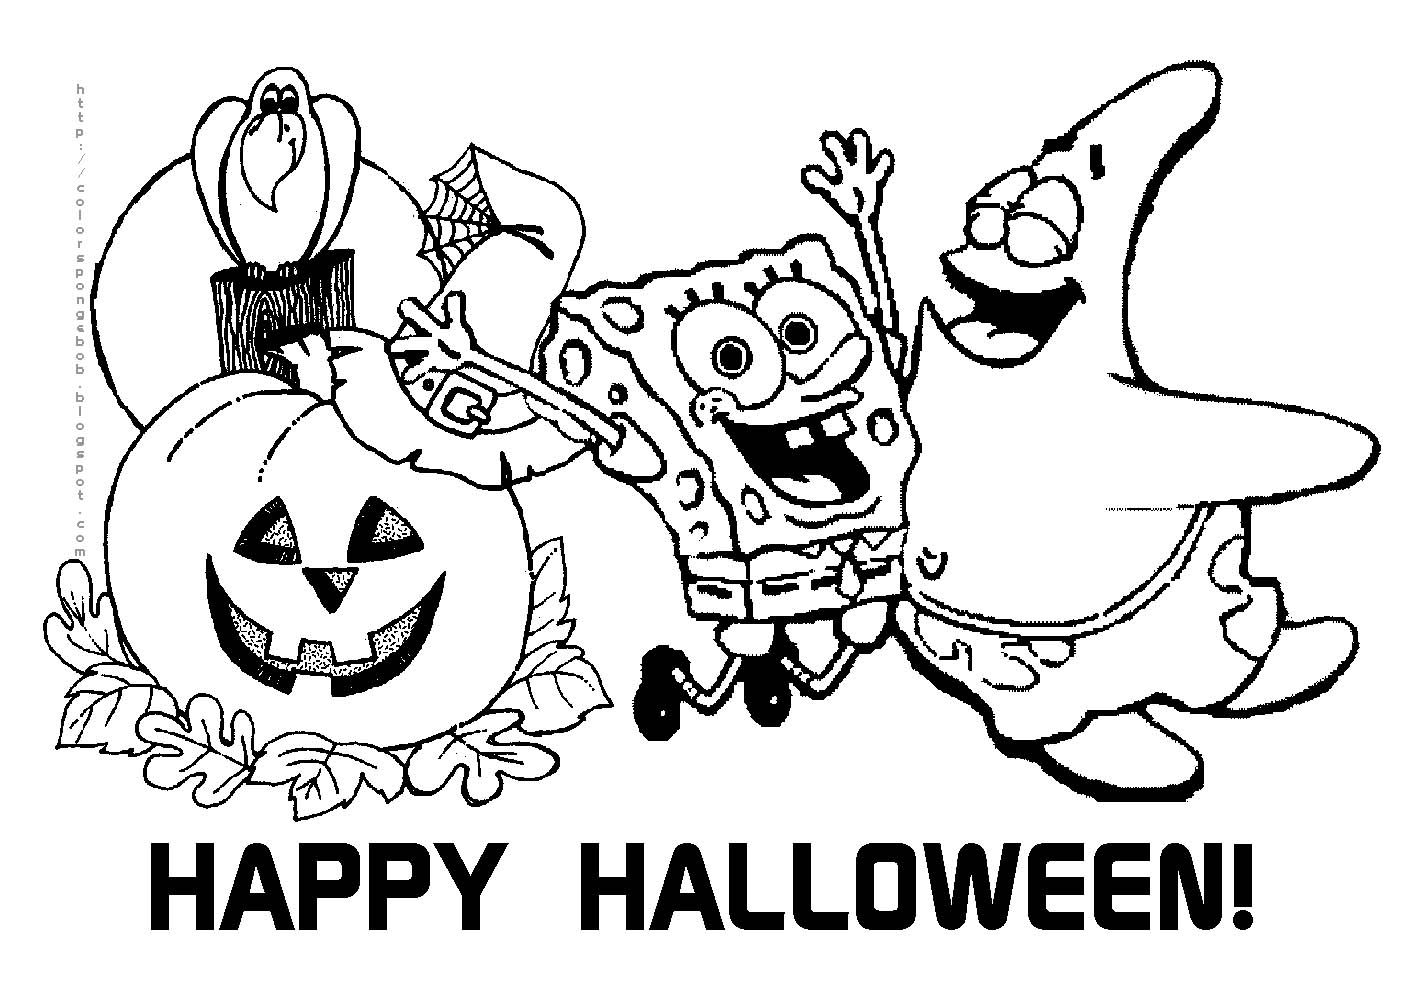 Printable Spongebob Squarepants Coloring Pages